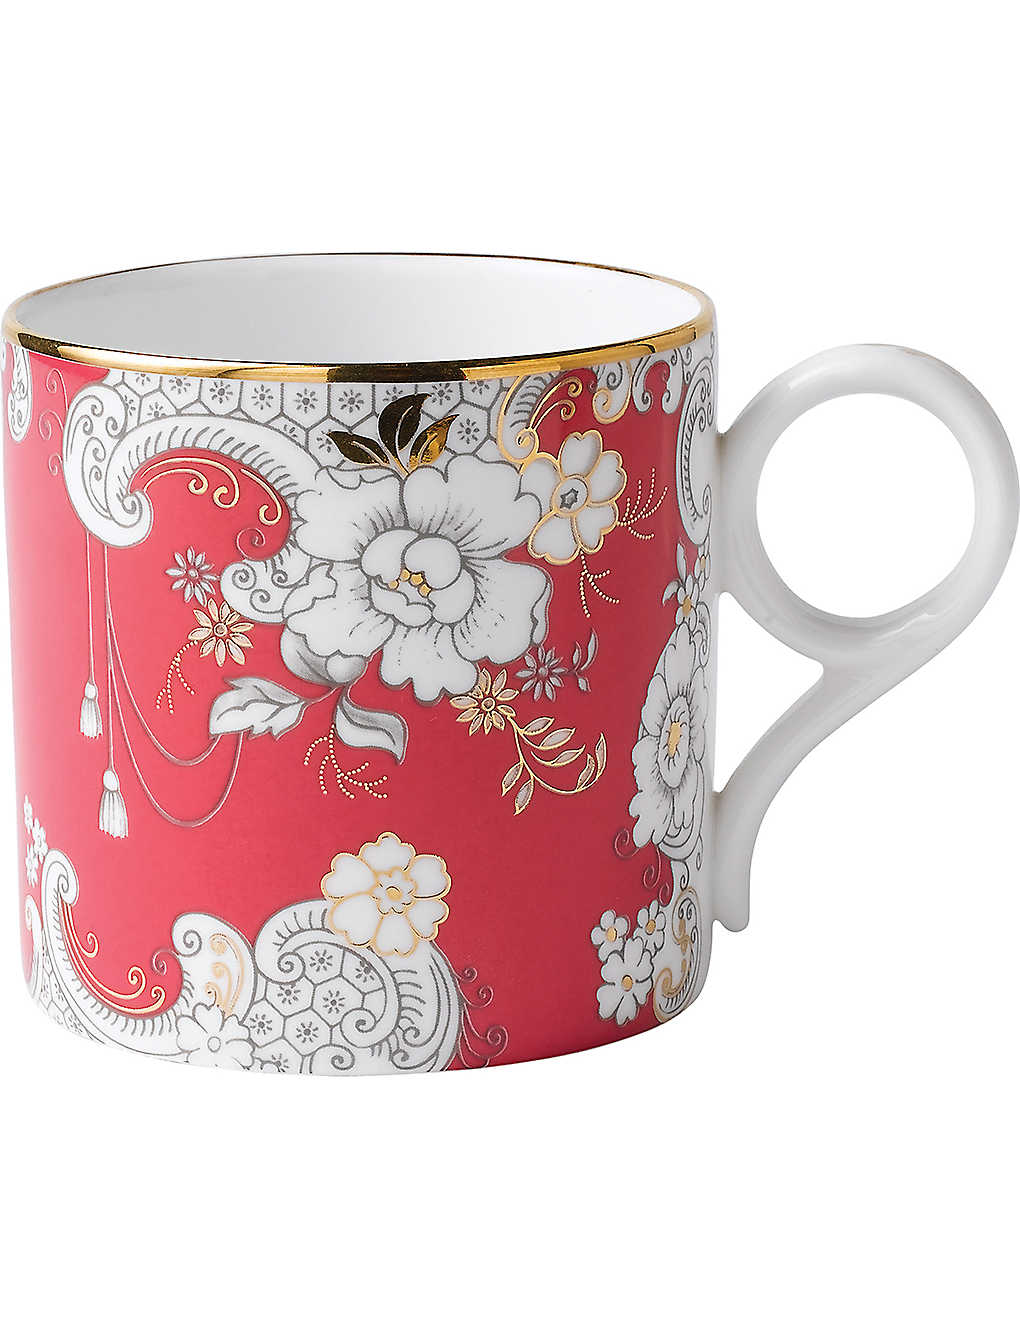 WEDGWOOD: Archive Collection pink rococo mug